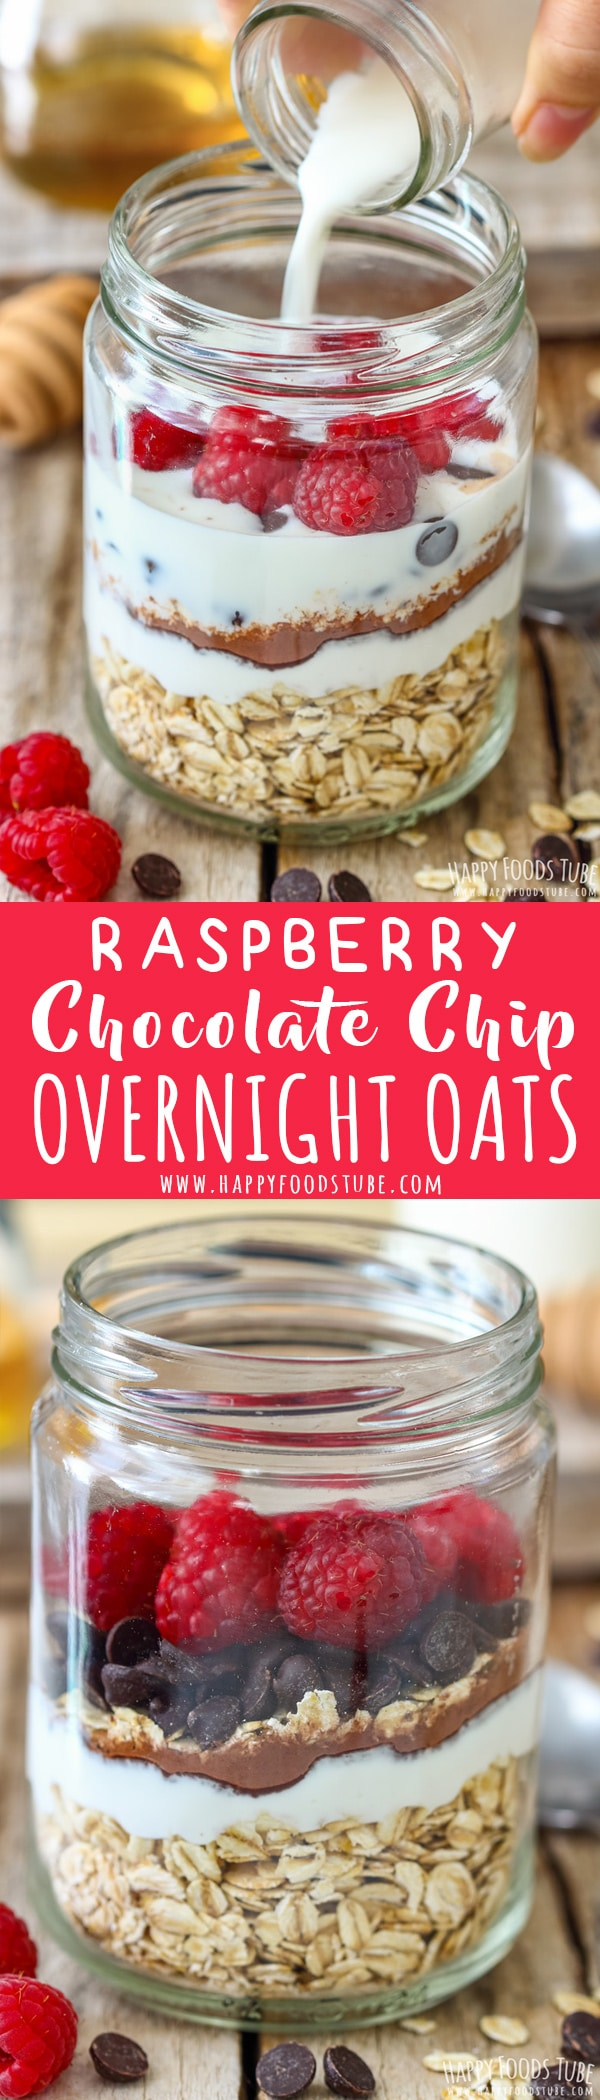 Looking for hassle-free breakfast recipes? Then Raspberry Chocolate Chip Overnight Oats are for you. This nutrient and protein rich overnight oats can be enjoyed cold or warm. #overnightoats #oats #breakfast #raspberry #chocolatechips #recipe